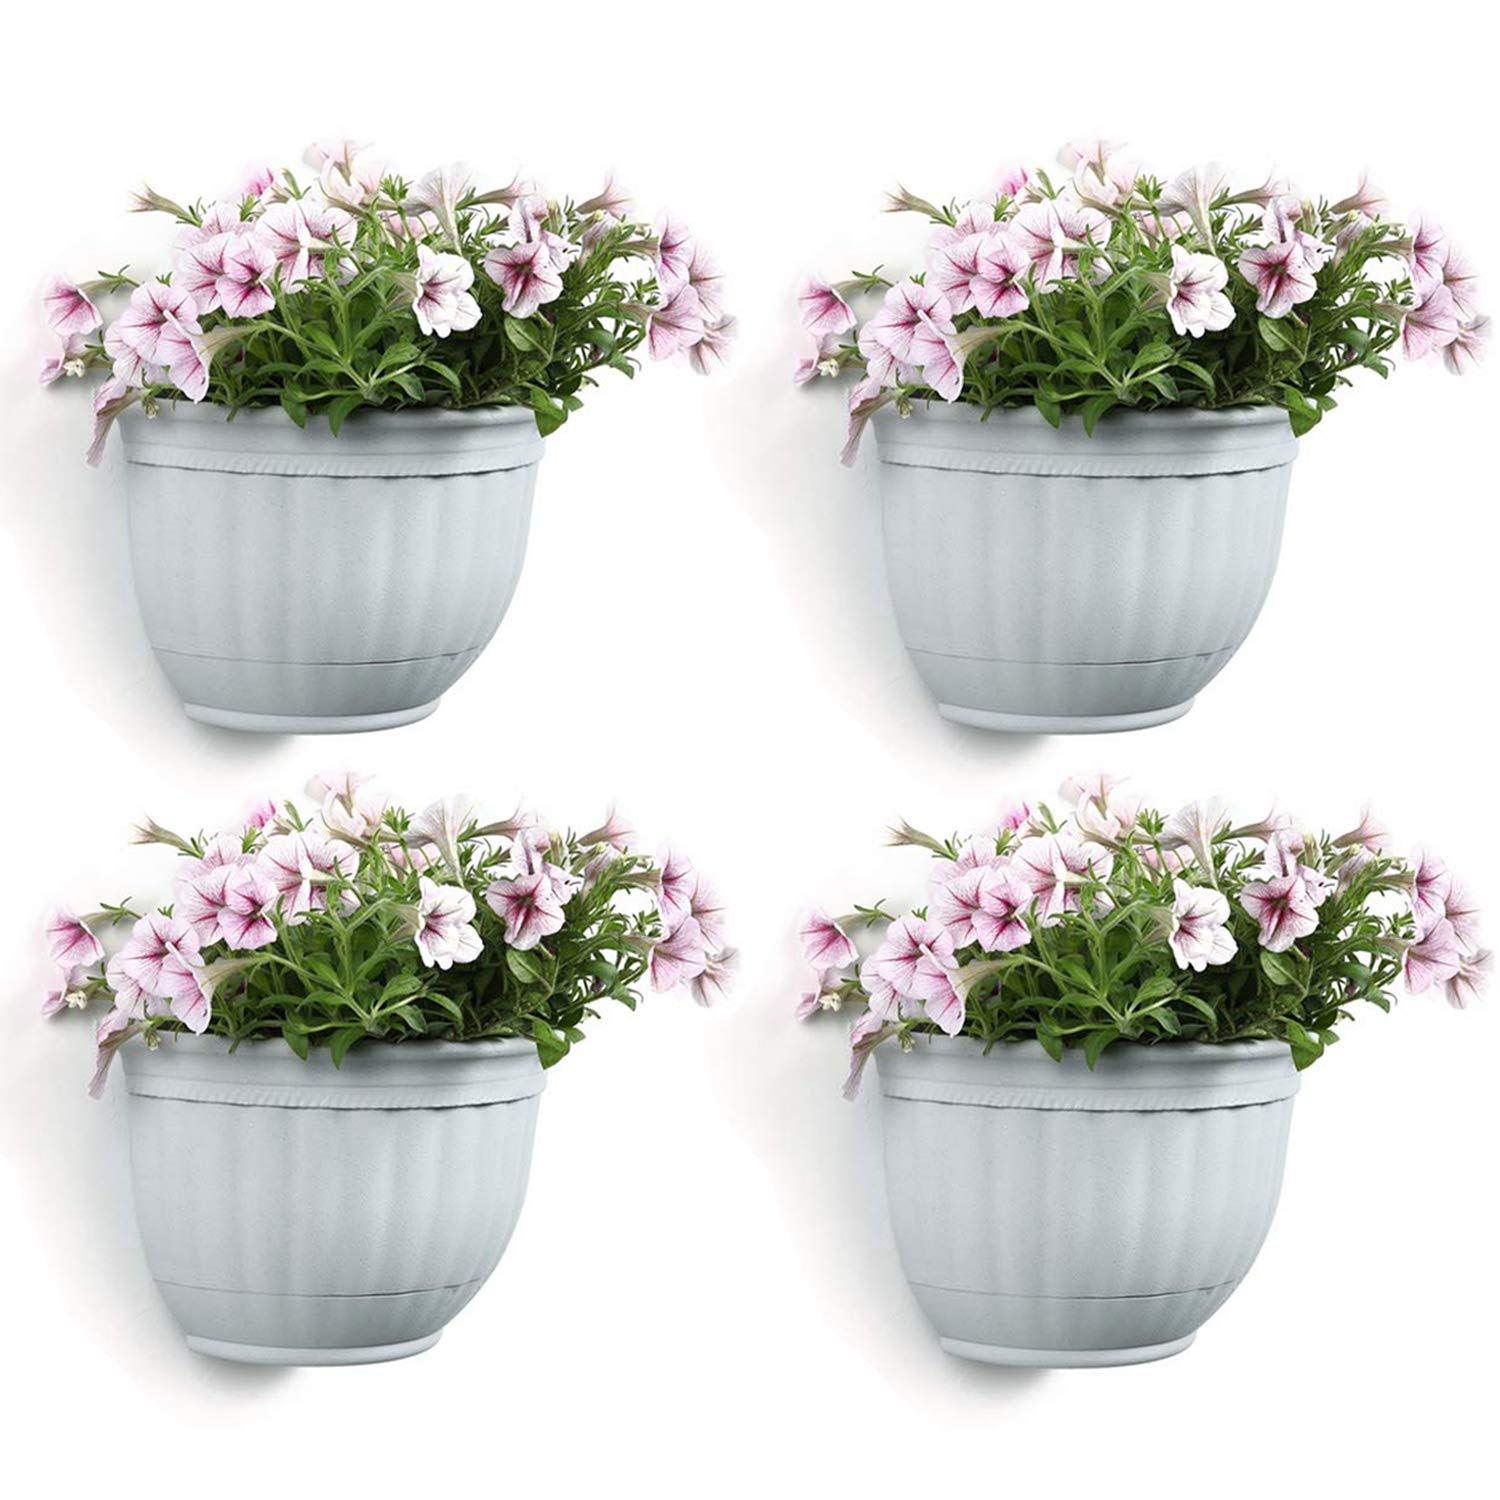 T4U Resin Wall Planter Marble Gray Medium Set of 4, Wall Mounted Garden Plant Flower Pot Basket Container Indoor Outdoor Use for Orchid Herb Succulent Cactus Home Office Porch Wall Decoration Gift